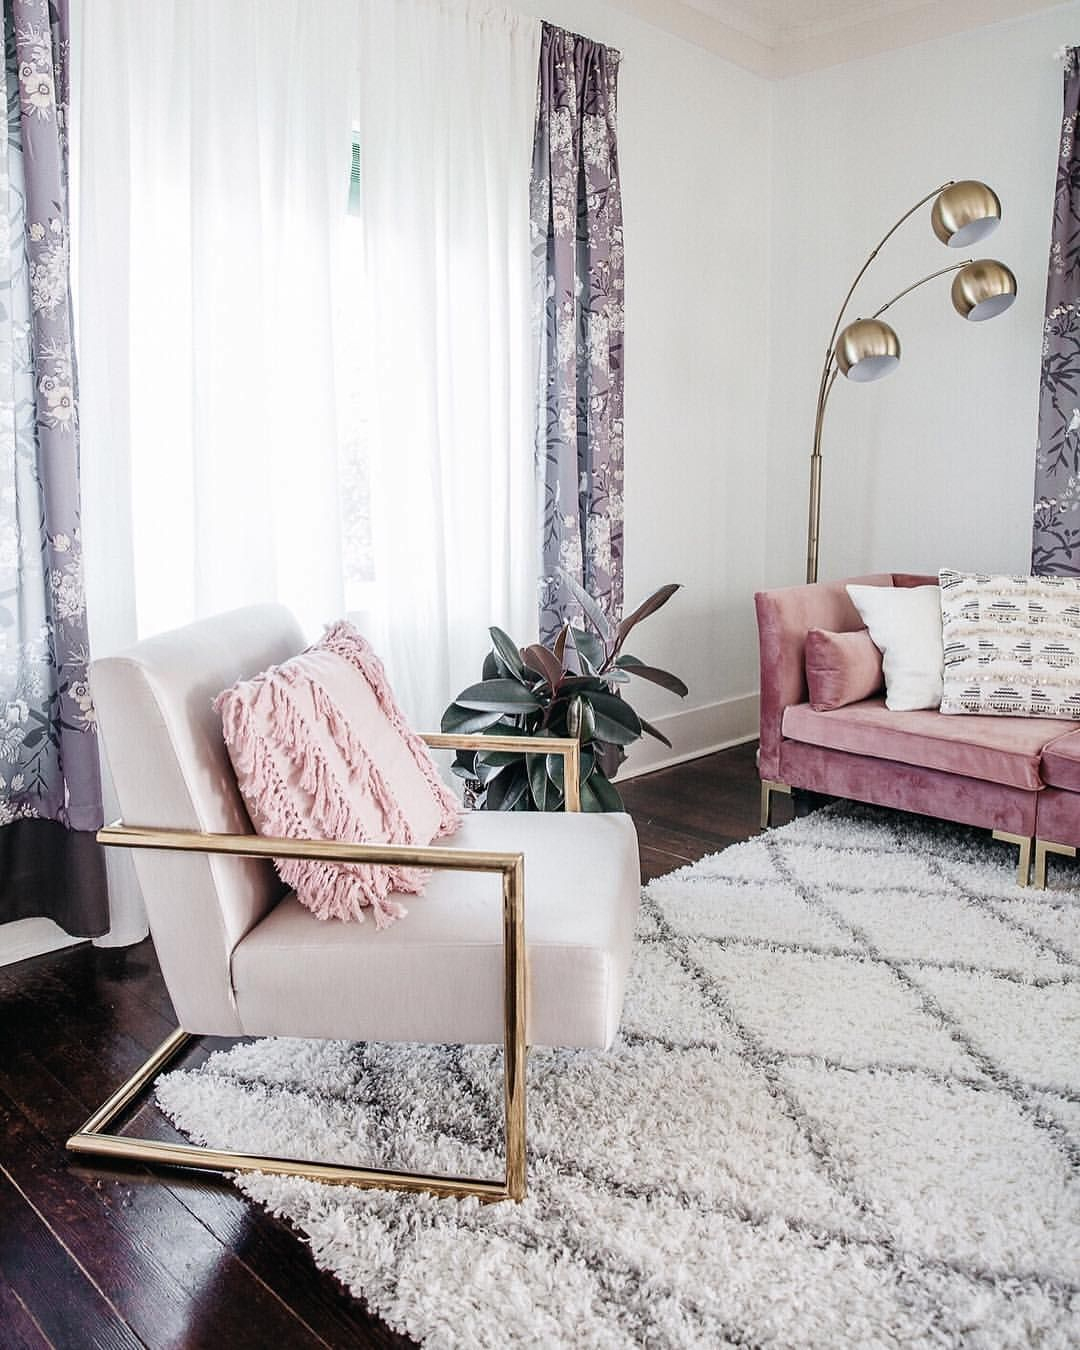 Ultra Luxe Bedroom Home Decor Inspiration Home Decor: Modern Glam Chic Style Living Room Gold Velvet Luxe Home